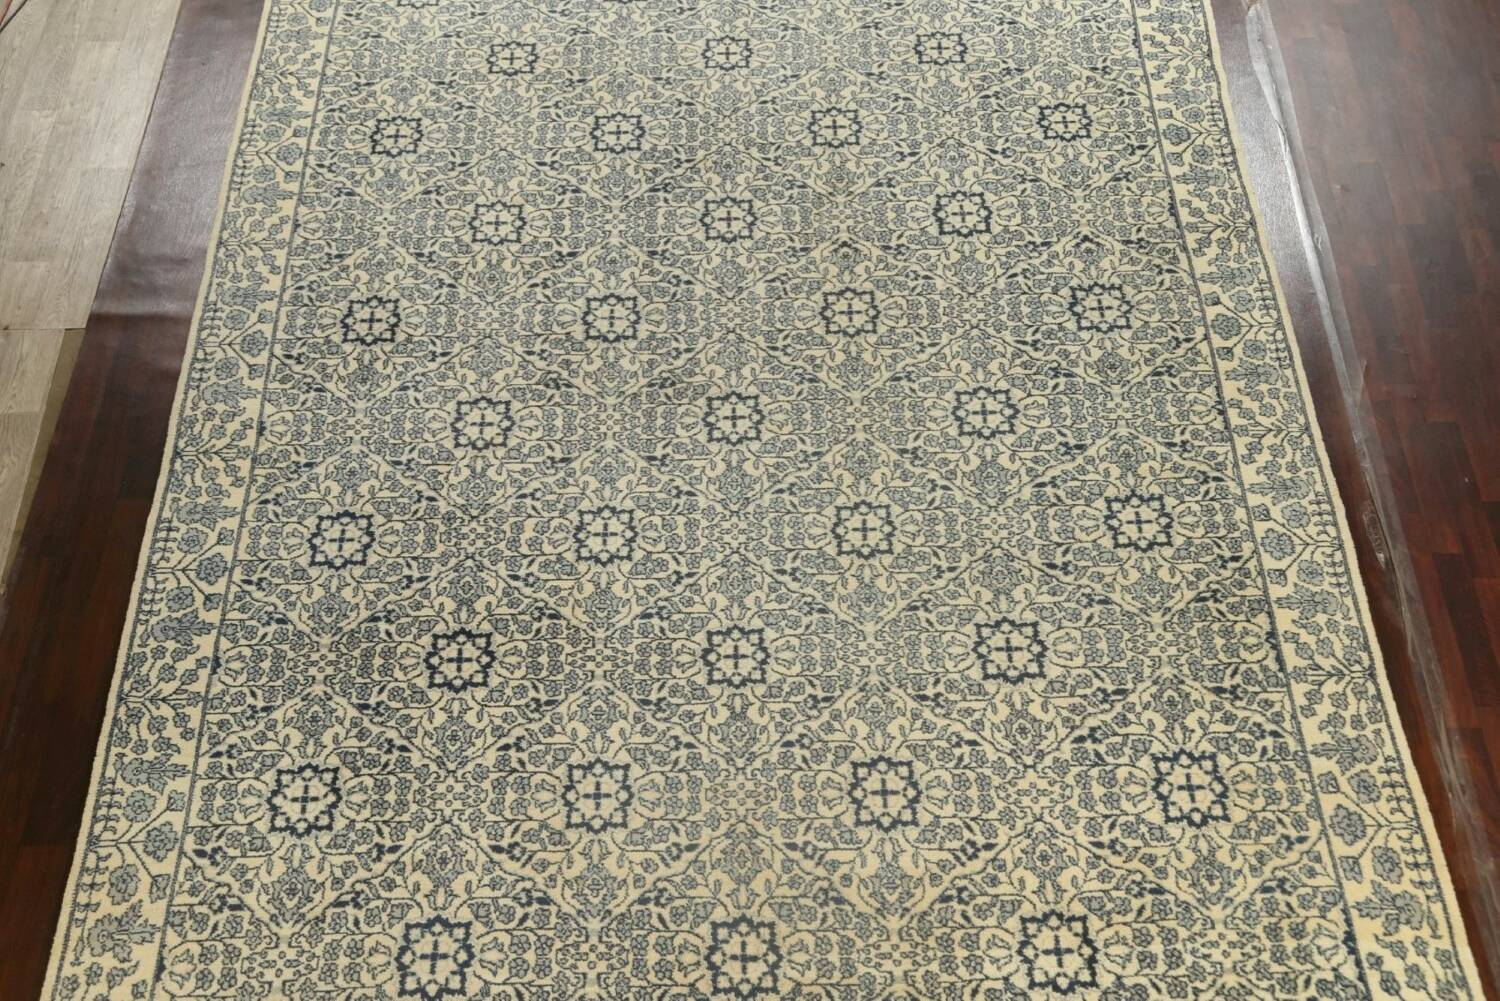 Large All-Over Oushak Oriental Area Rug 11x15 image 3